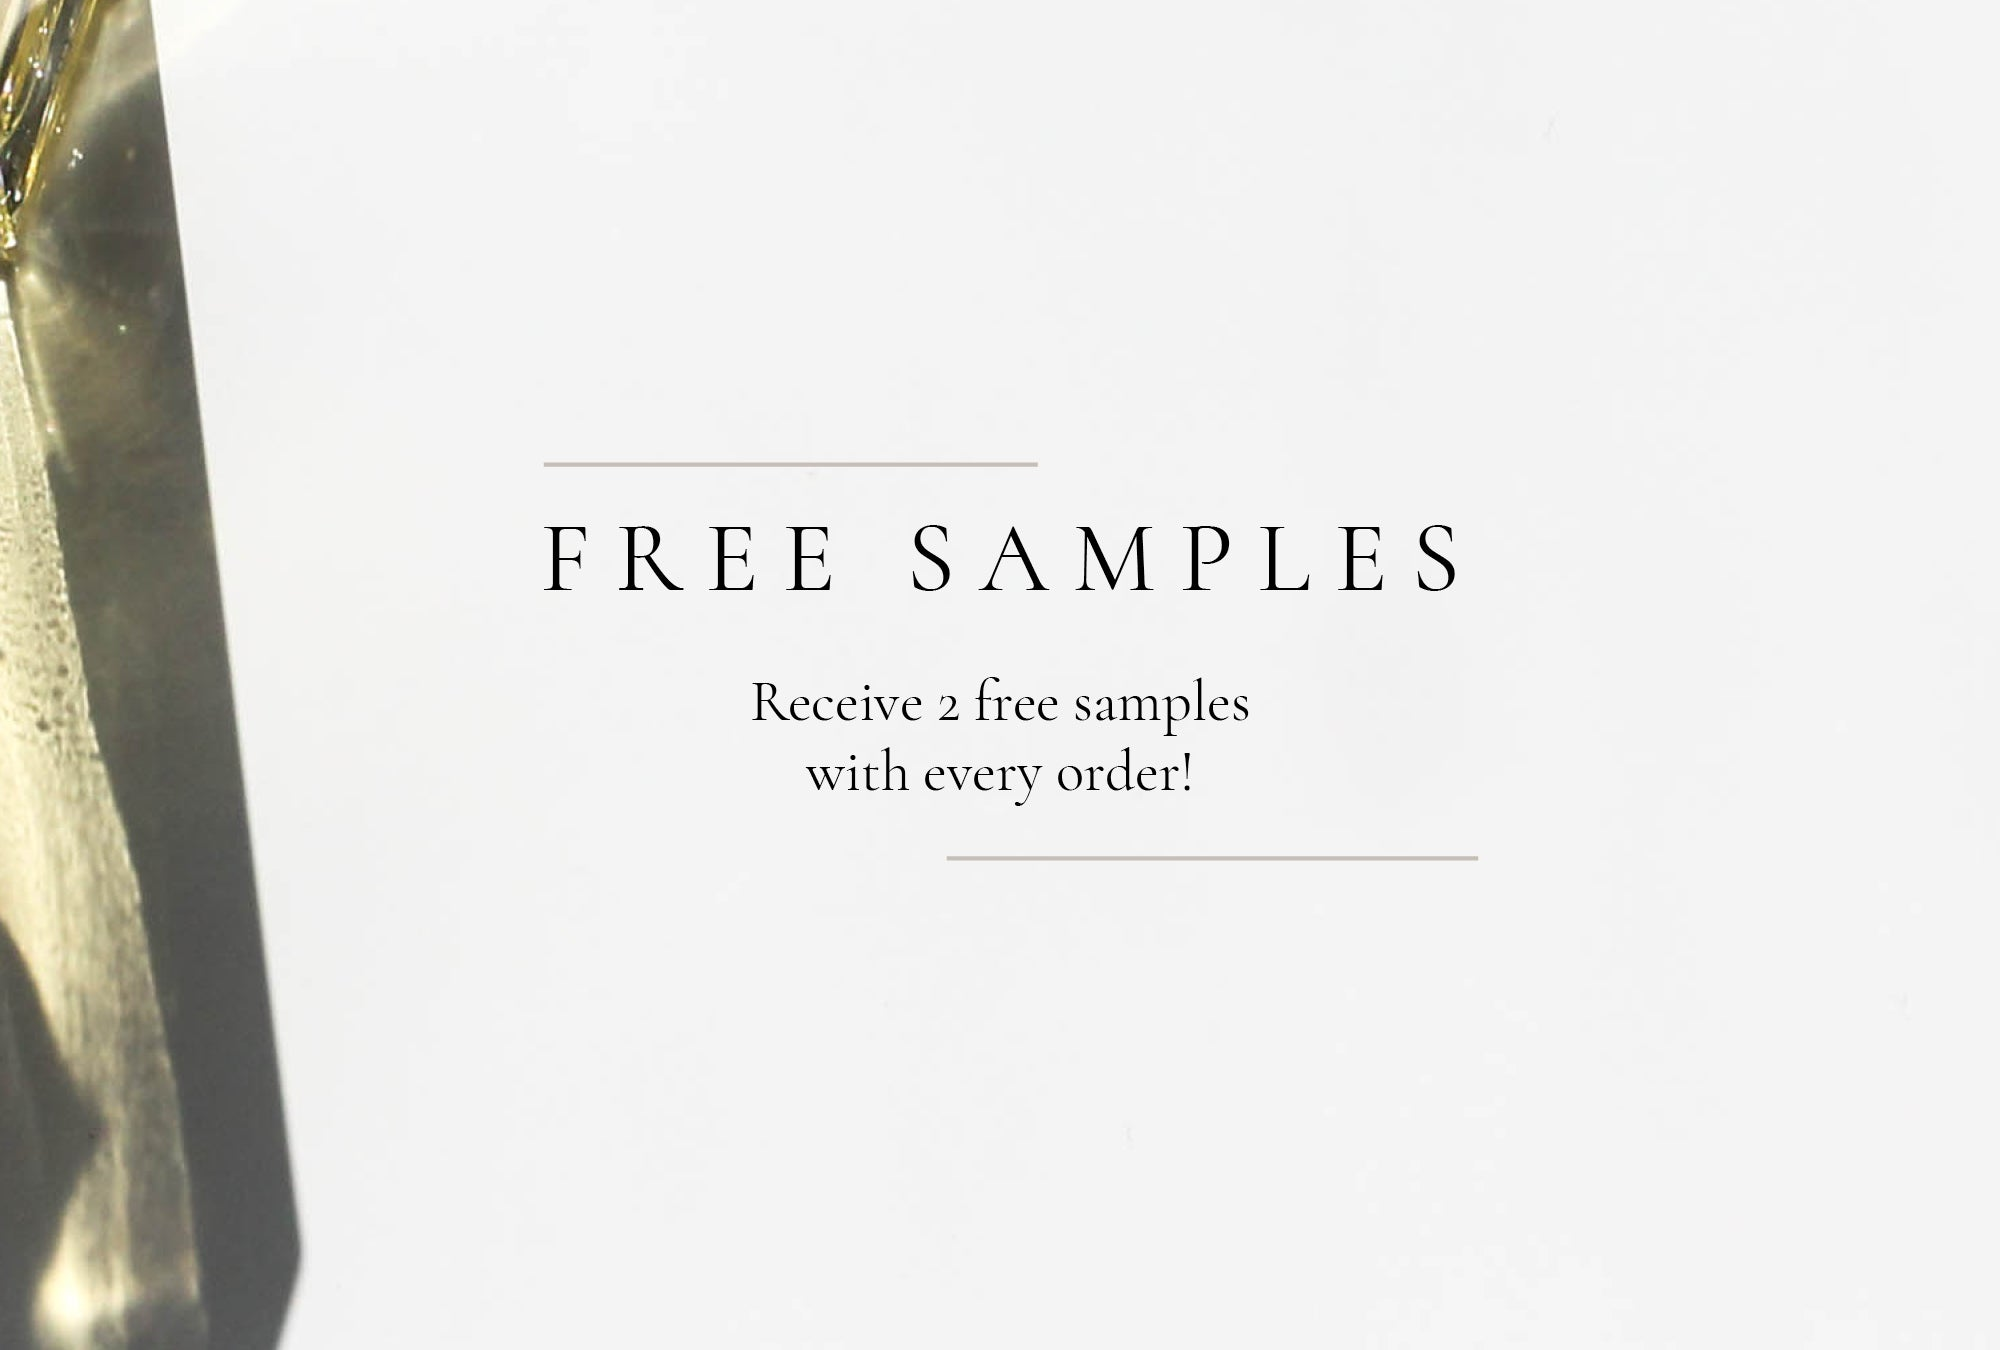 2 Free samples on orders $75+